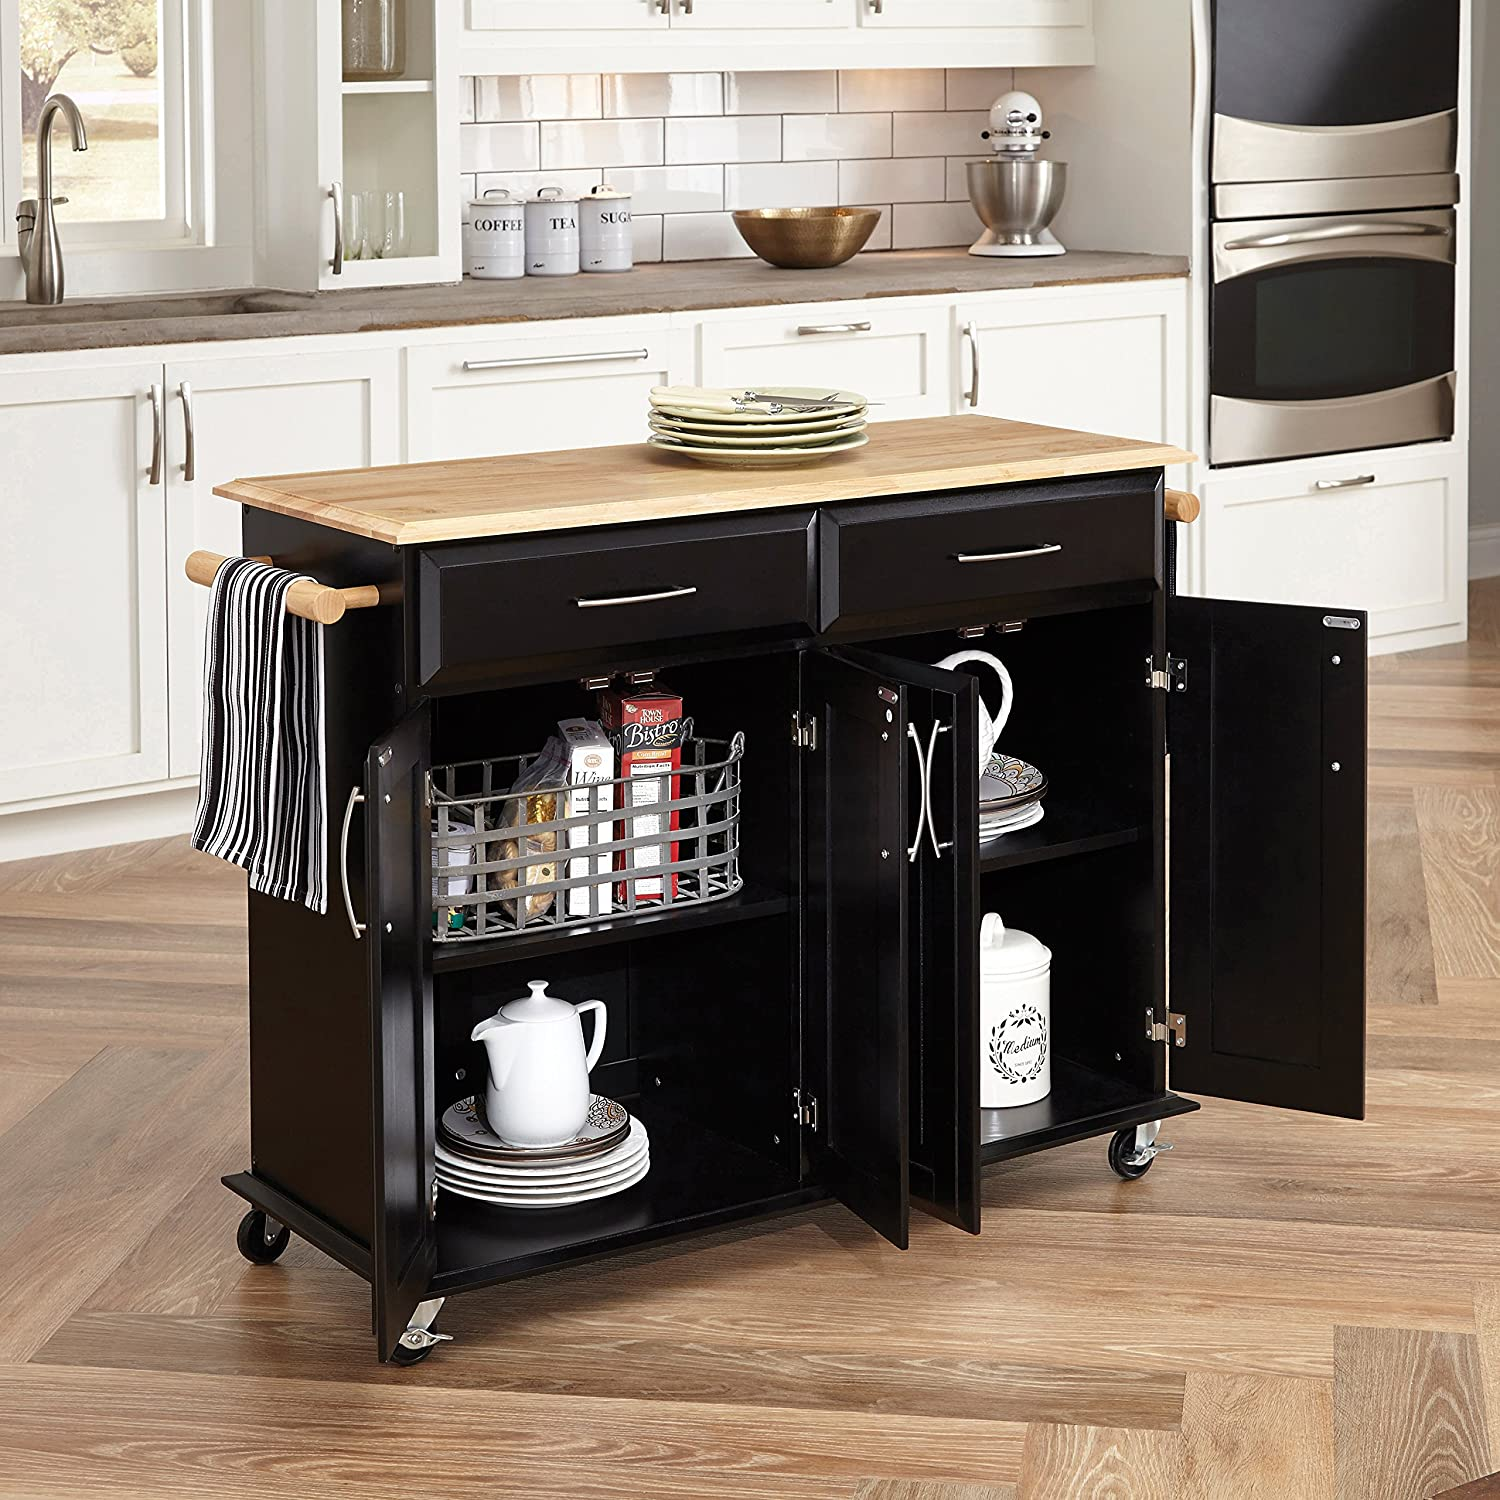 Ordinaire Amazon.com: Home Styles 4528 95 Dolly Madison Kitchen Cart, Black Finish:  Kitchen U0026 Dining